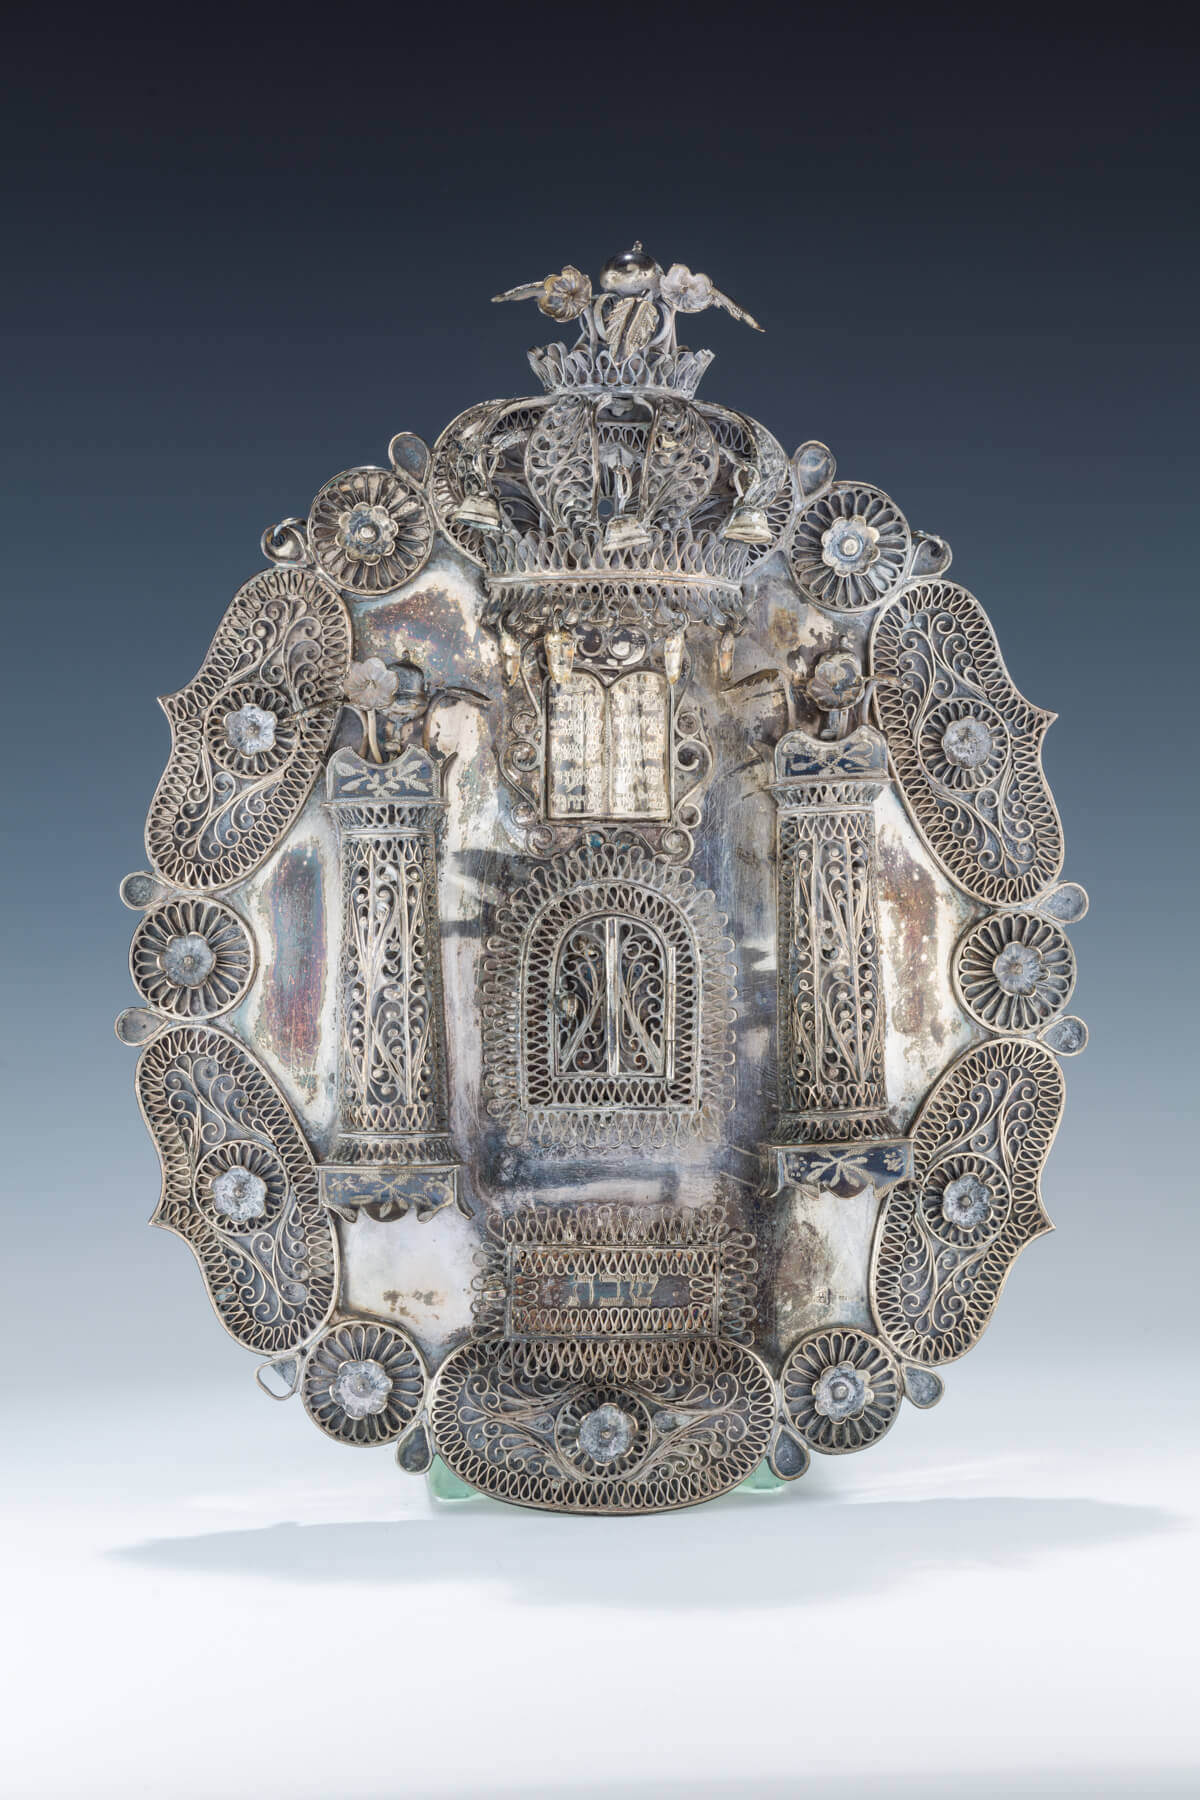 125. A SILVER AND FILIGREE TORAH SHIELD AND MATCHING POINTER